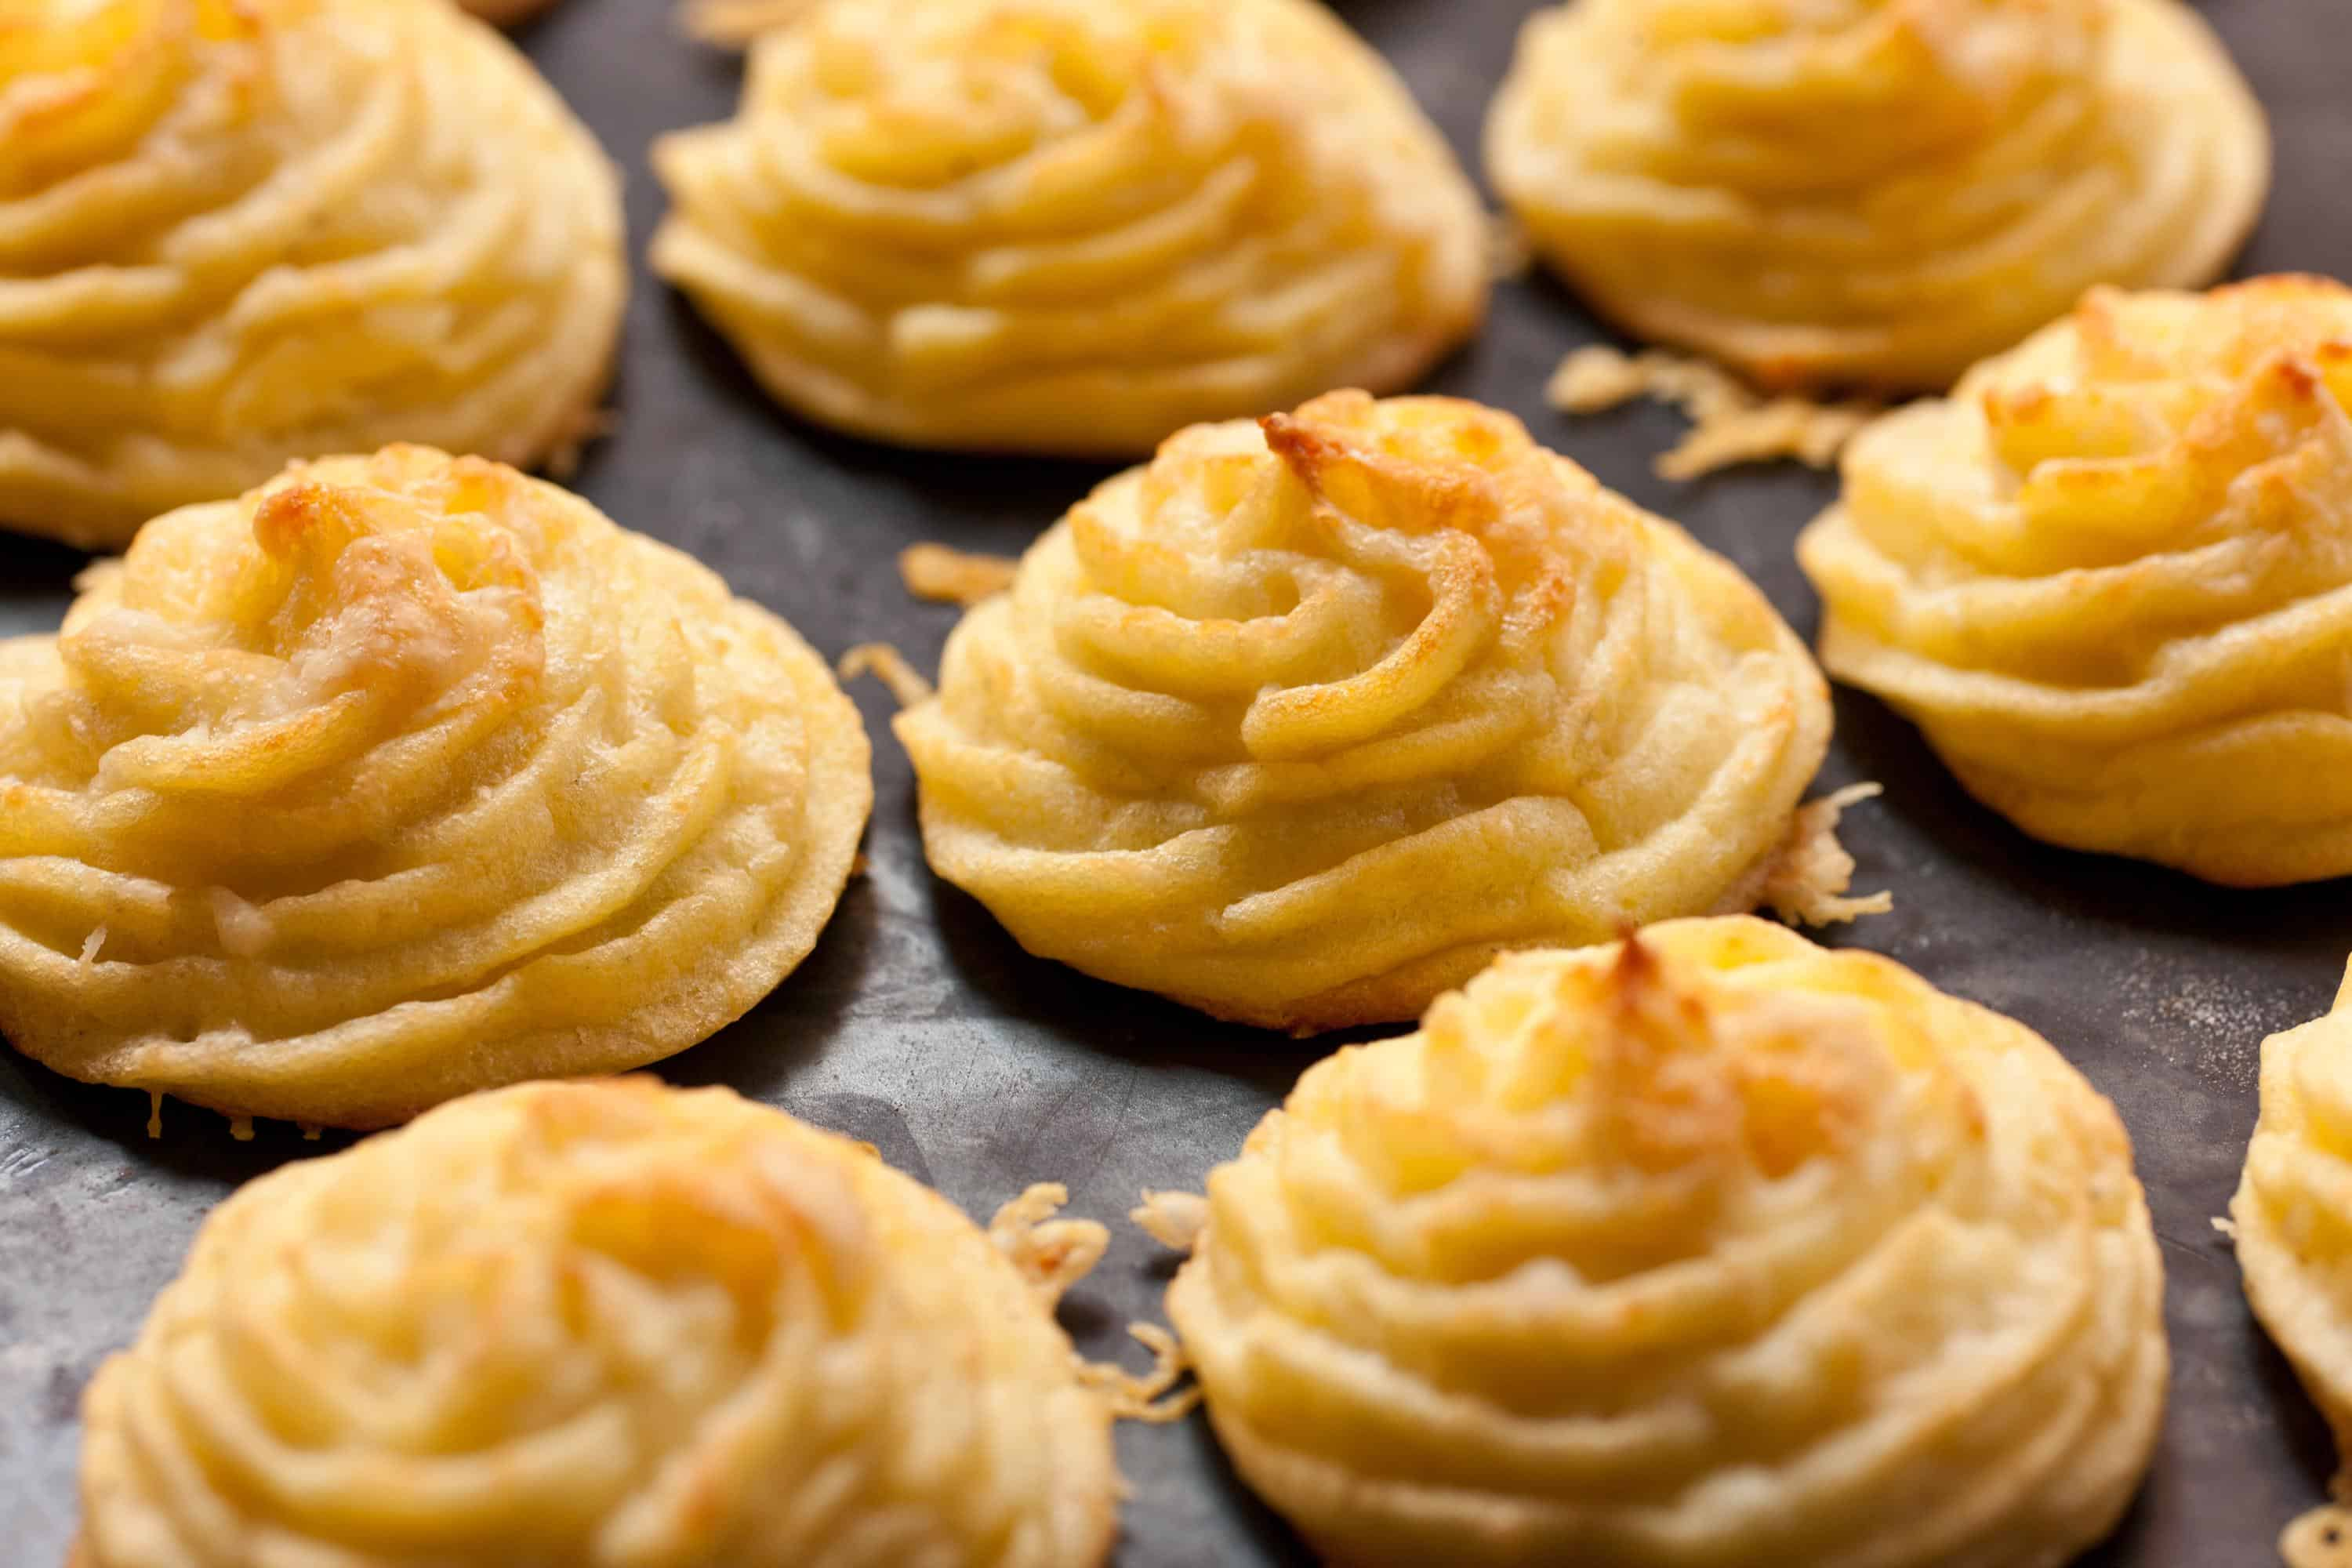 Swirling duchess potatoes